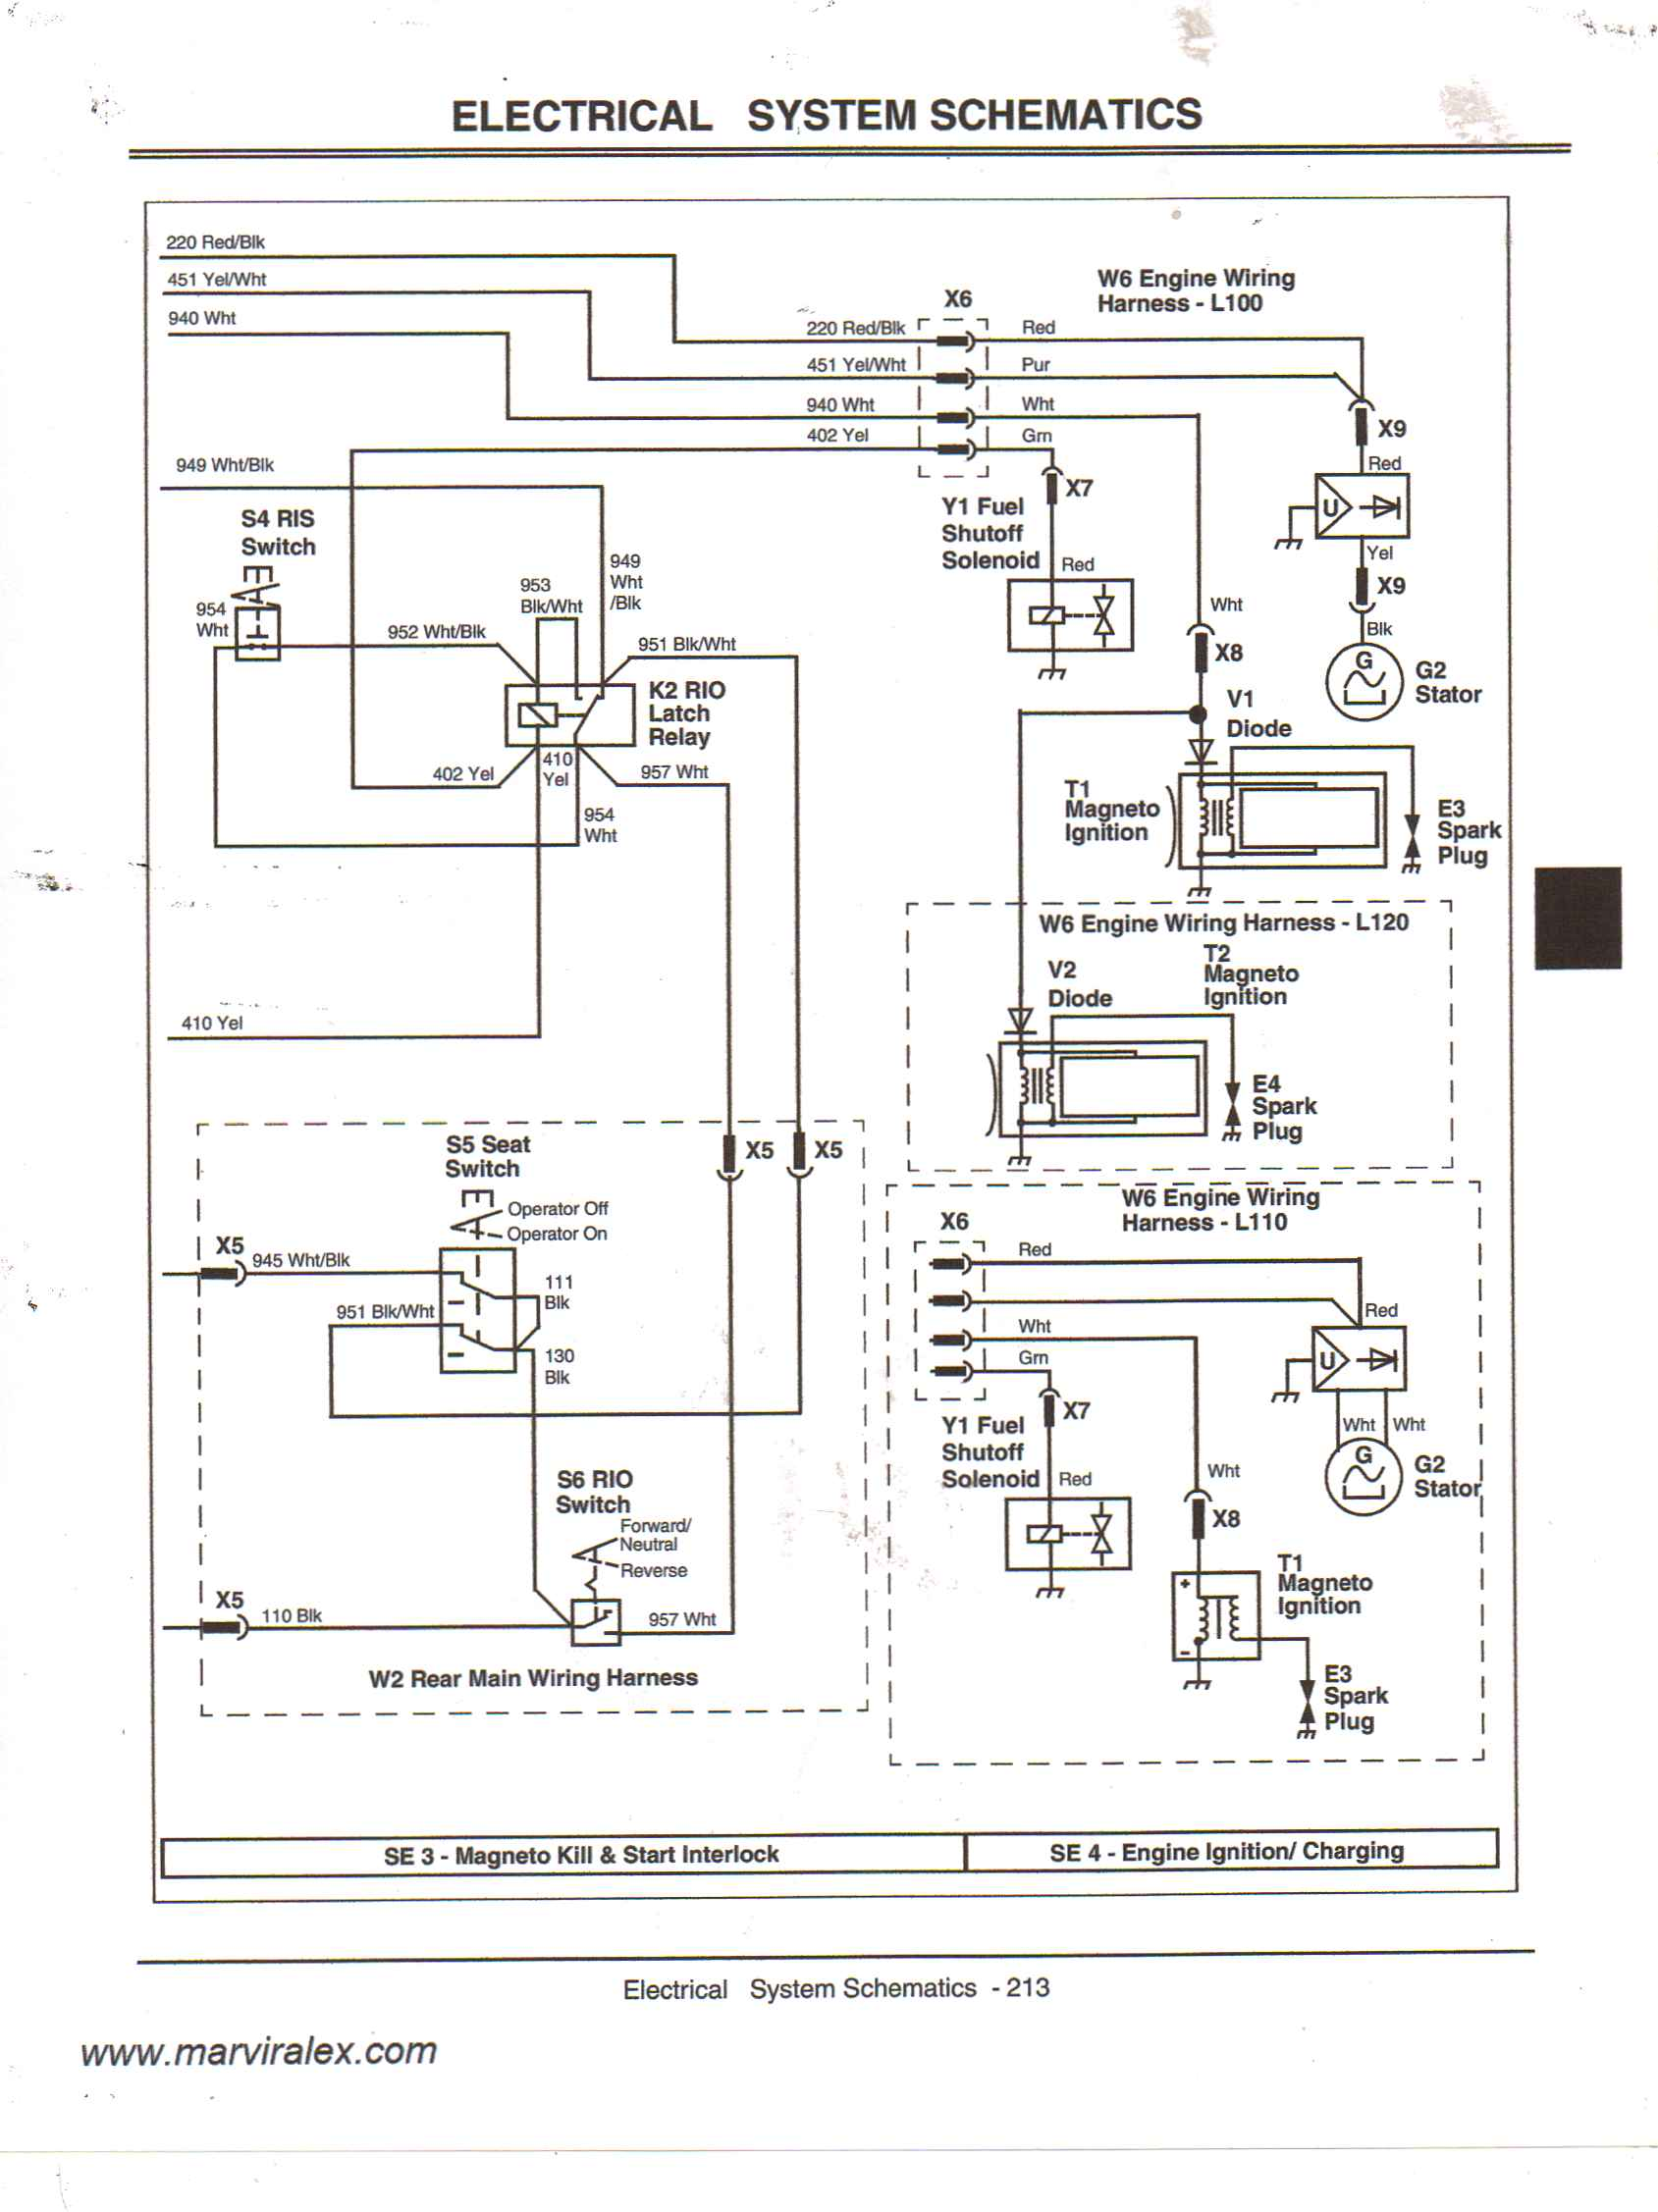 john deere 5525 wiring harness all wiring diagram Ford Tractor Electrical Wiring Diagram